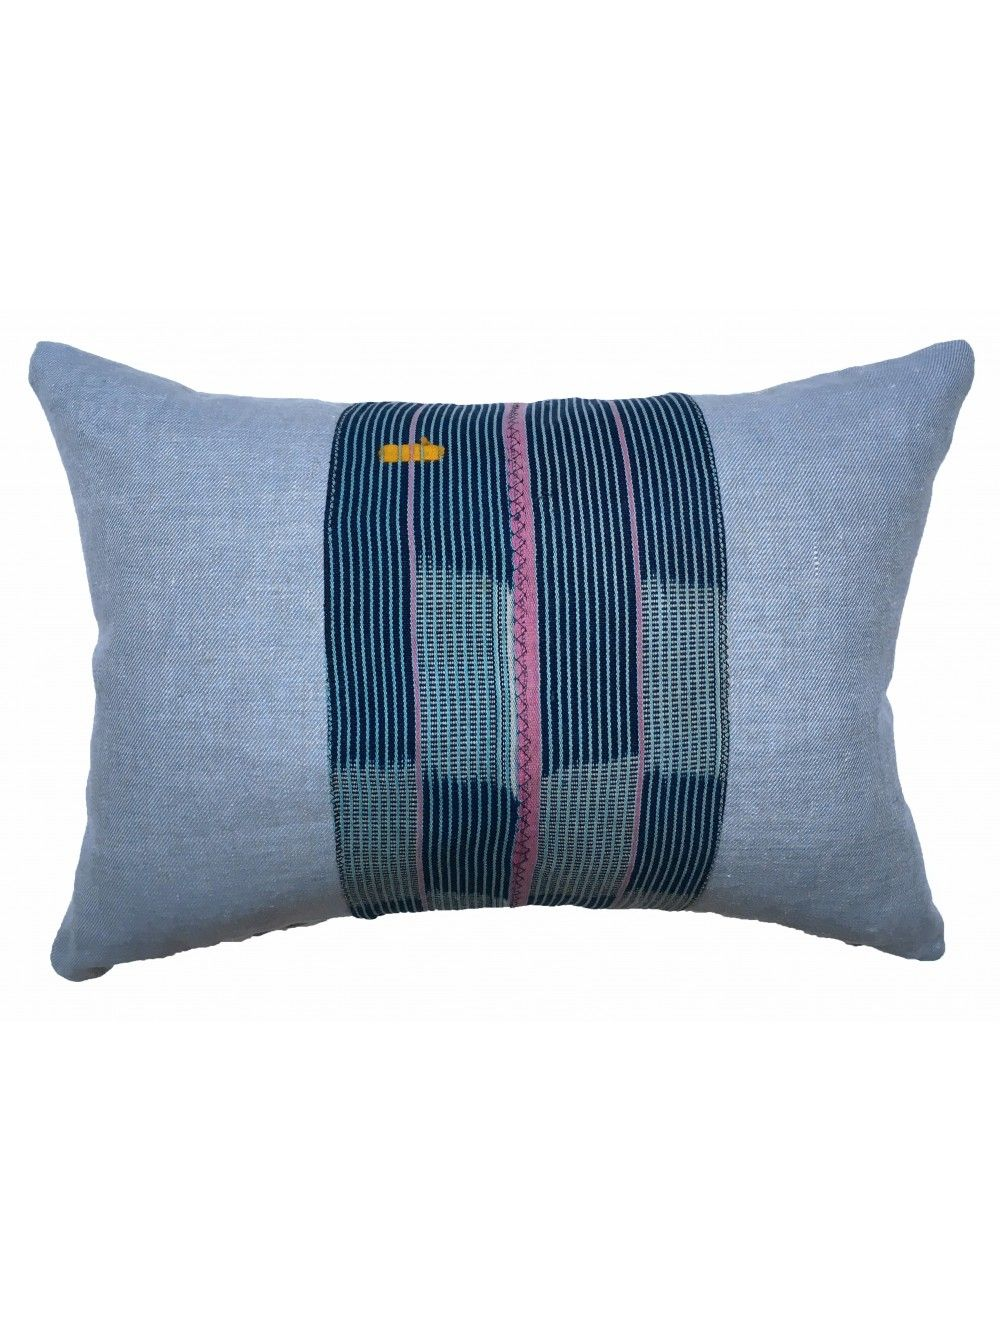 throw pillow southwestern home woven hayneedle pattern traditional pillows decorative rizzy master cfm product patten